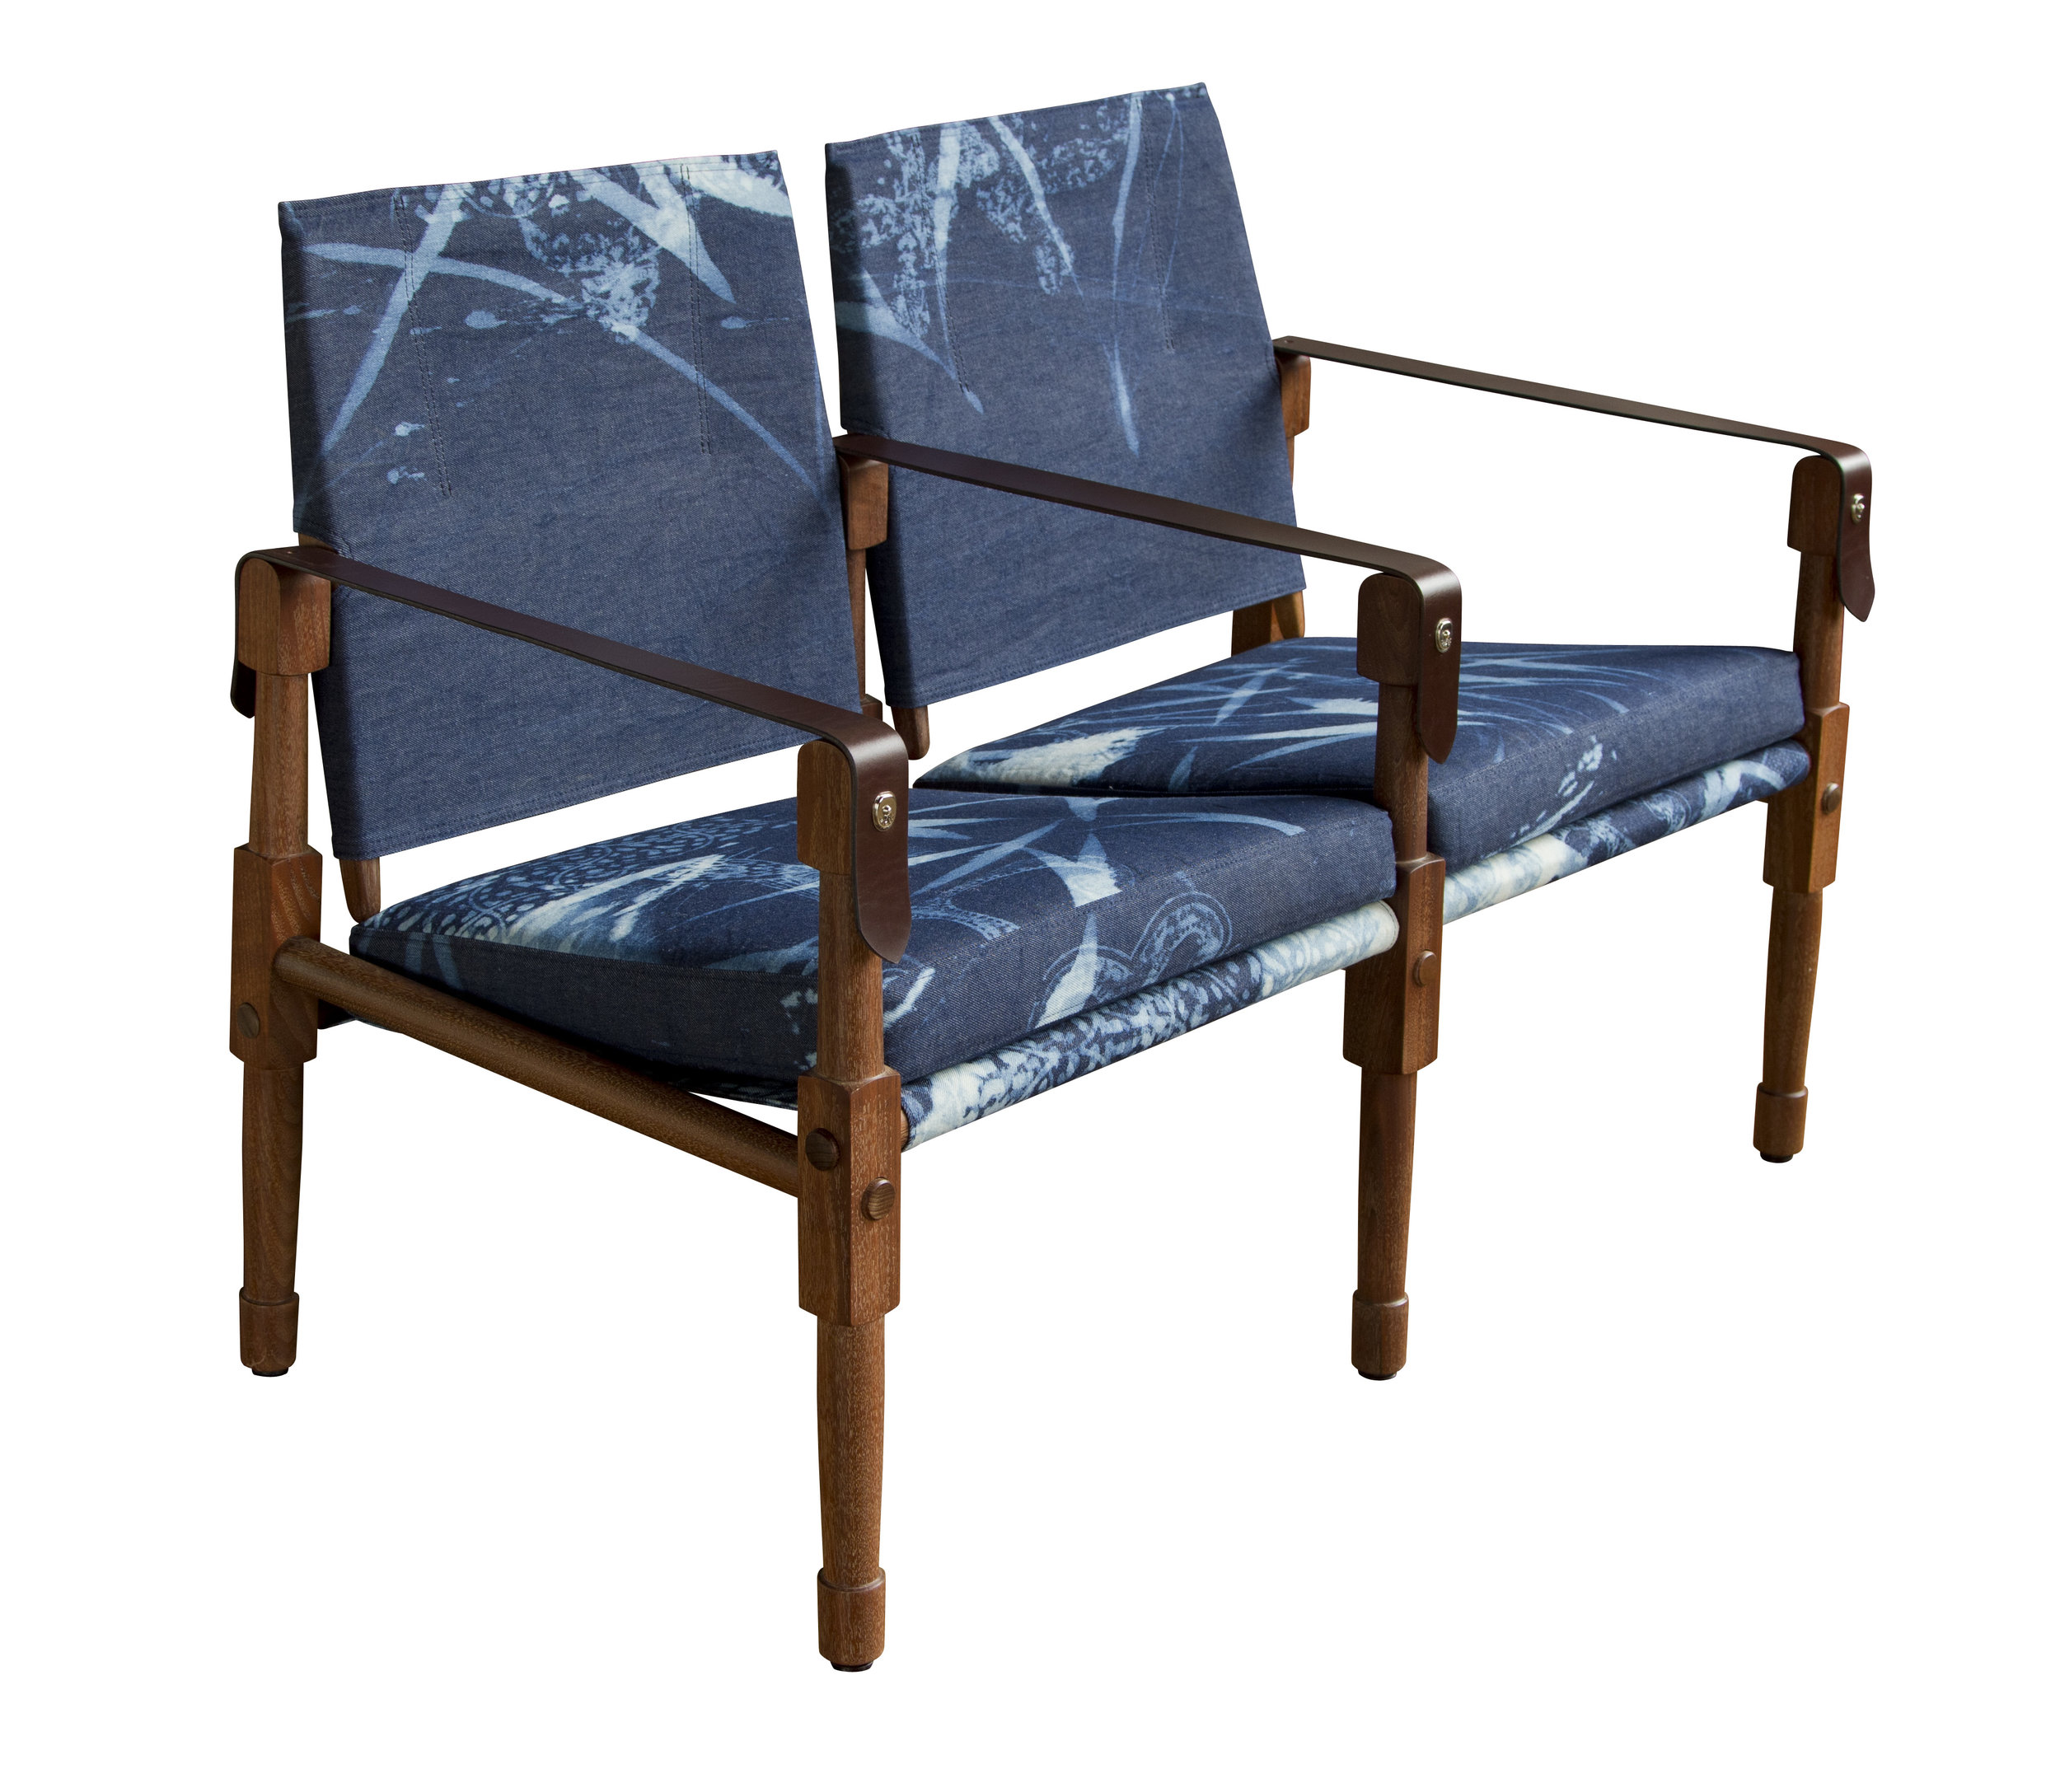 Oiled walnut with Robshaw bleach block-printed denim upholstery and havana English bridle leather strapping  14